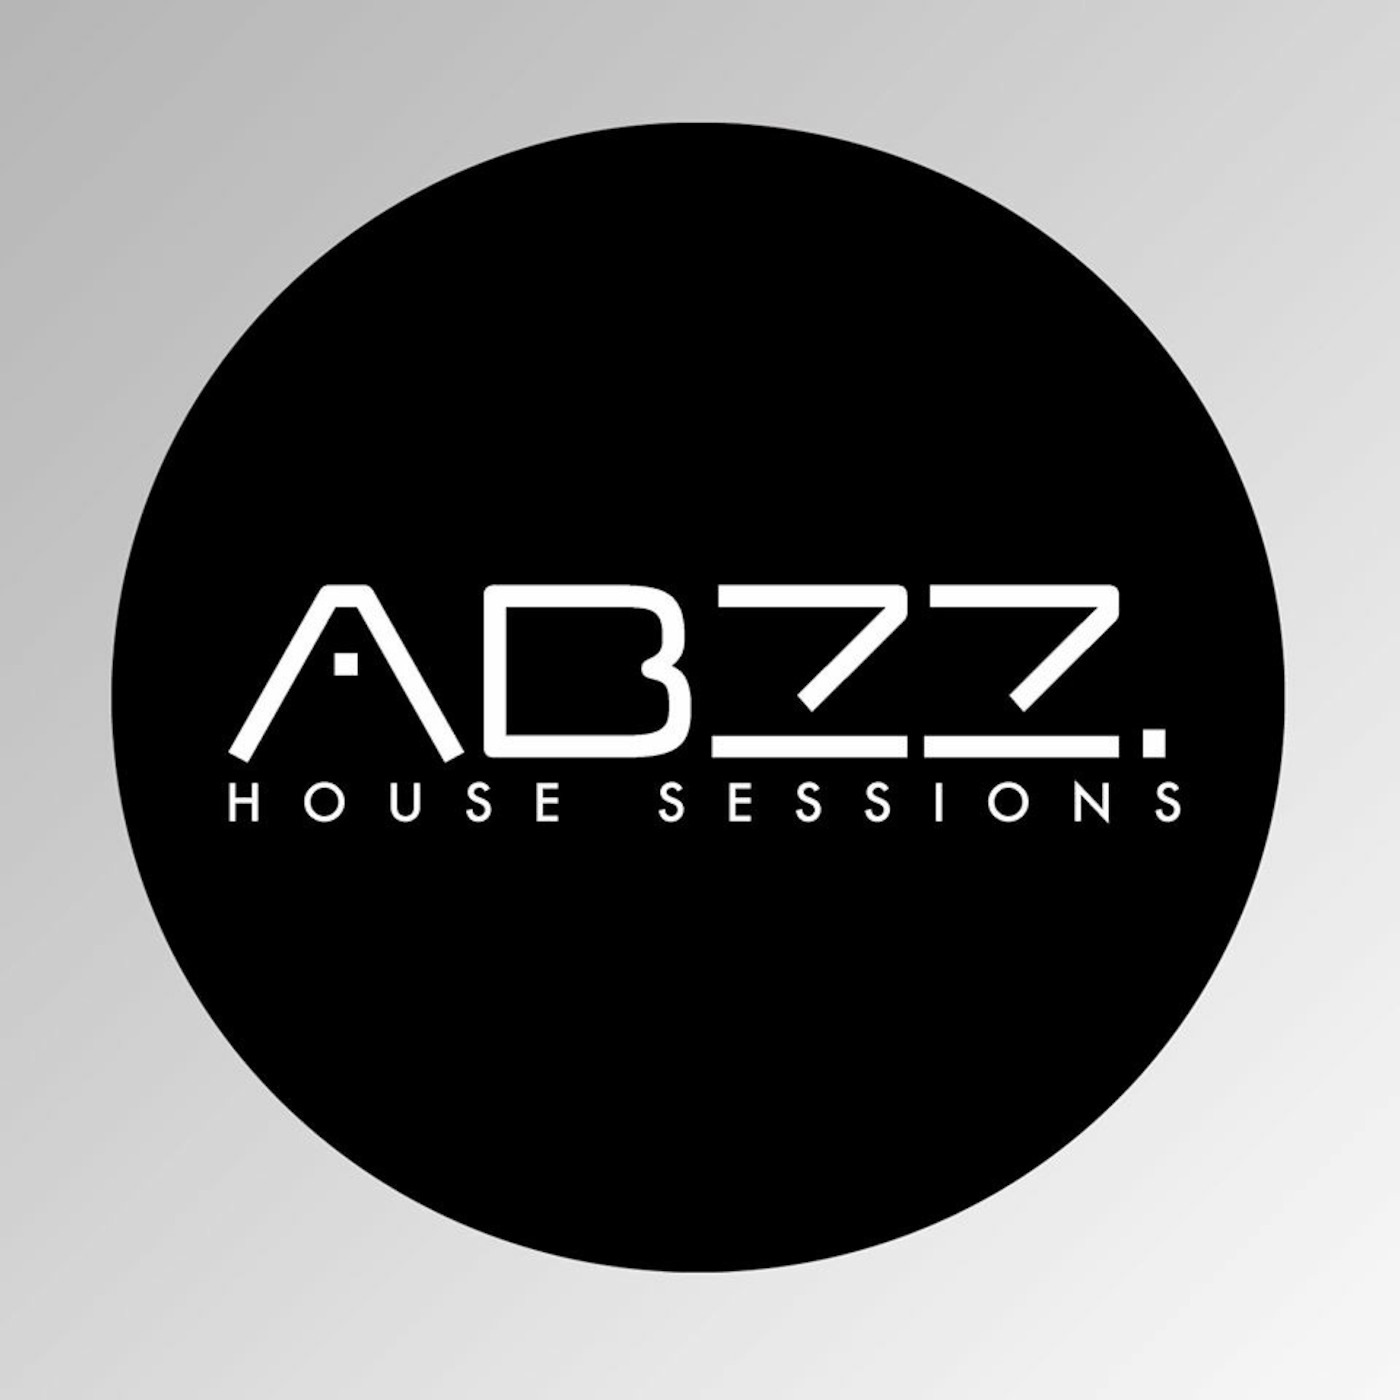 ABZZ. House Sessions